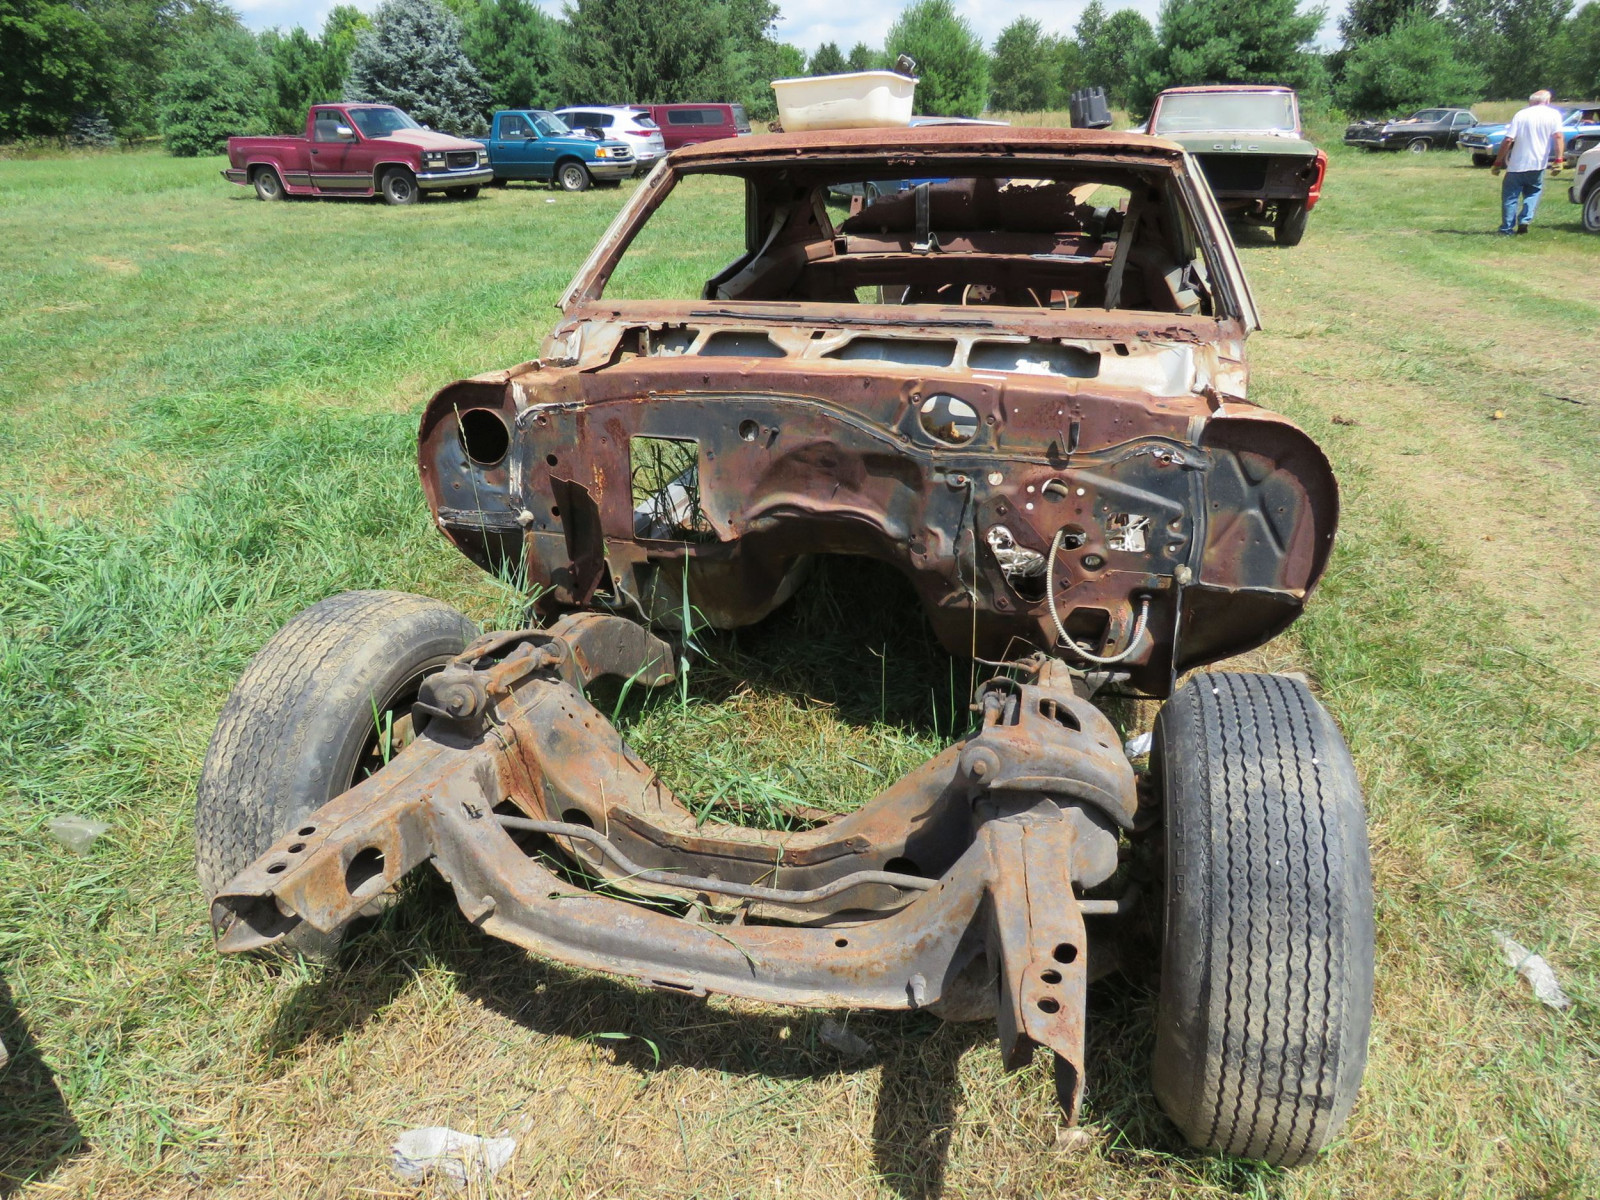 1969 Chevrolet Camaro Body for Restore - Image 2